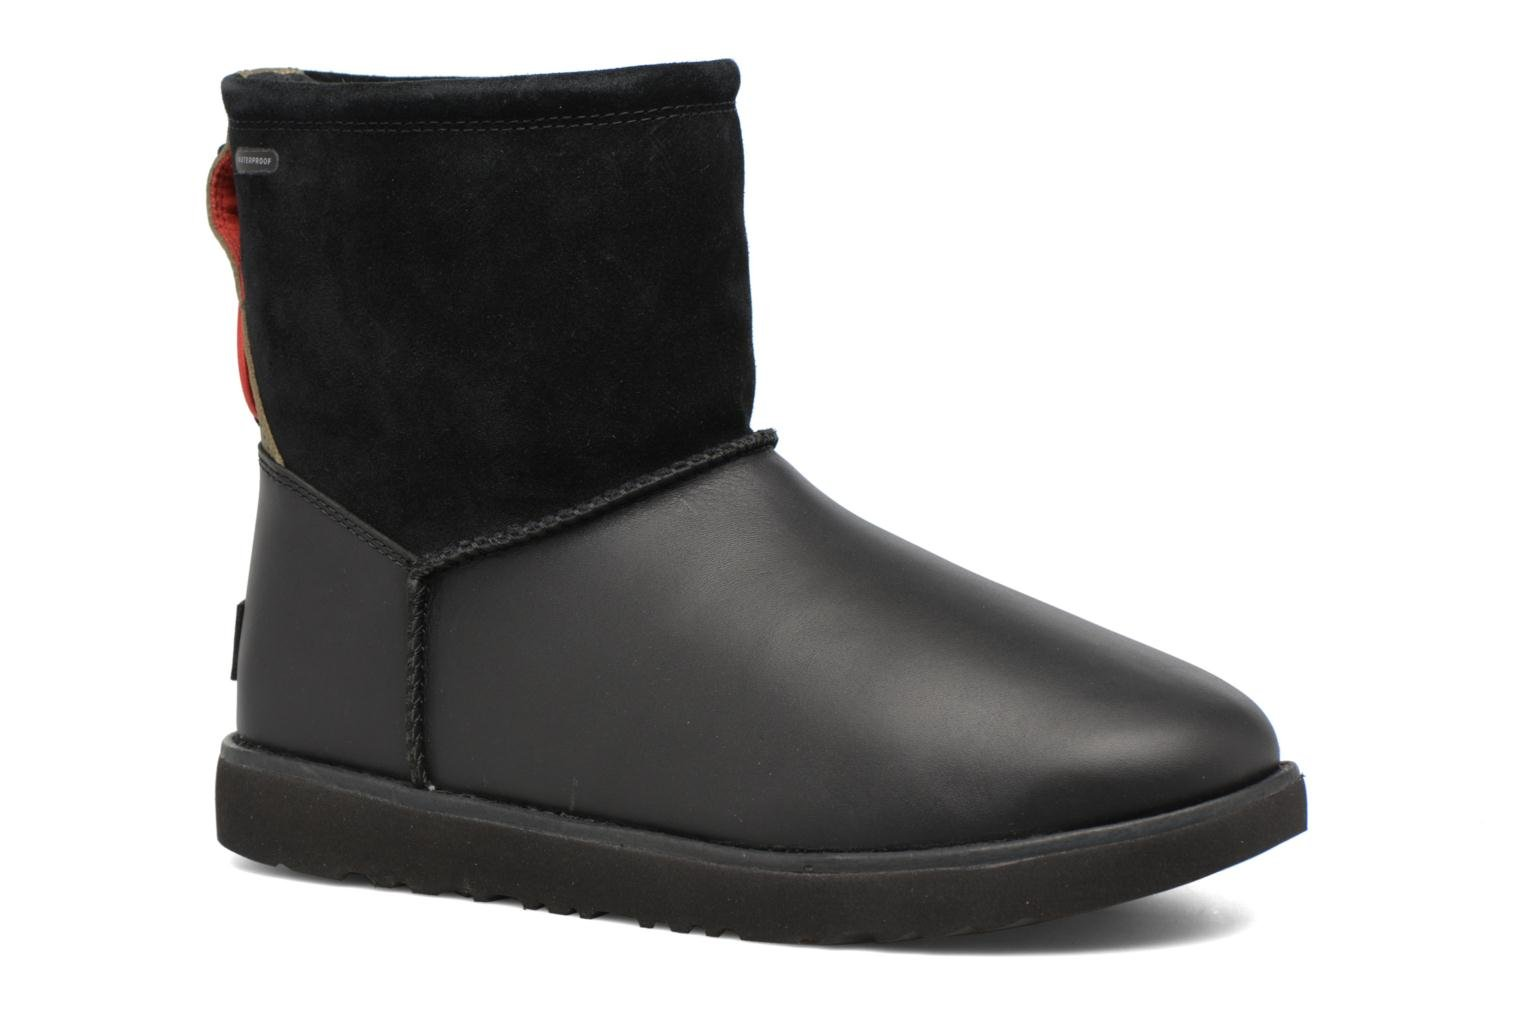 UGG Boots Botte Classic Toggle Waterproof - TOGGLE-NOIR UGG soldes 3jia1A